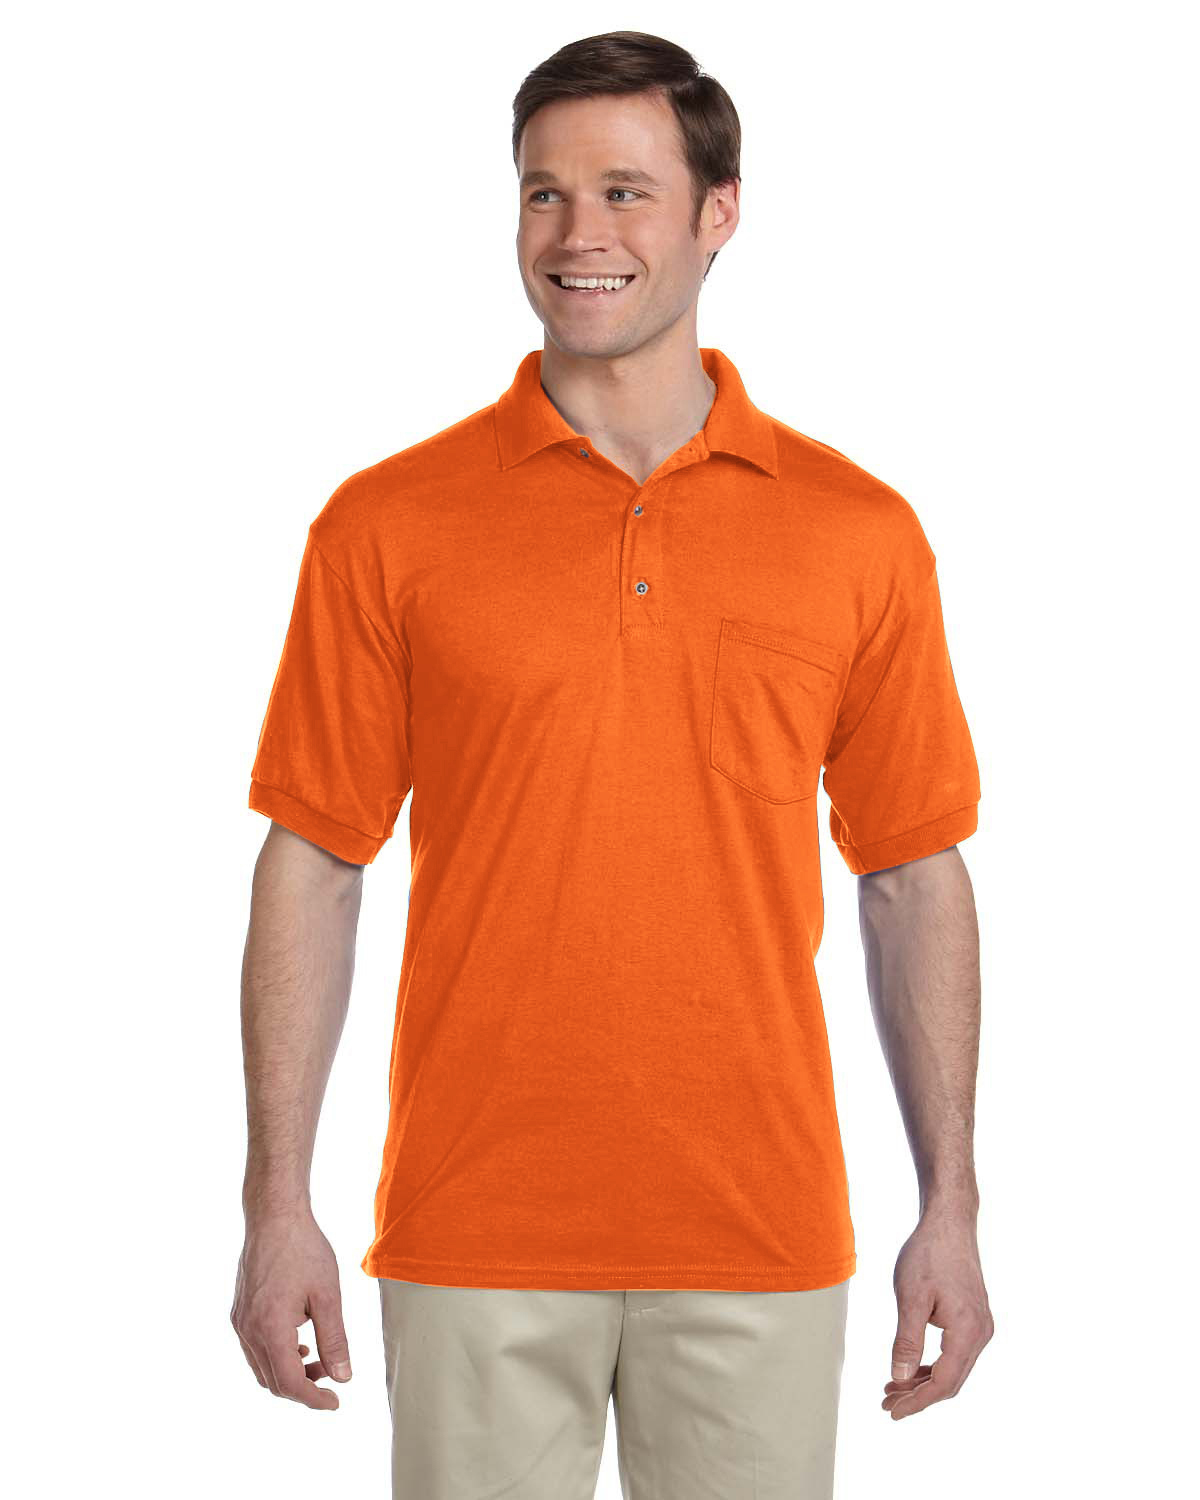 click to view S Orange